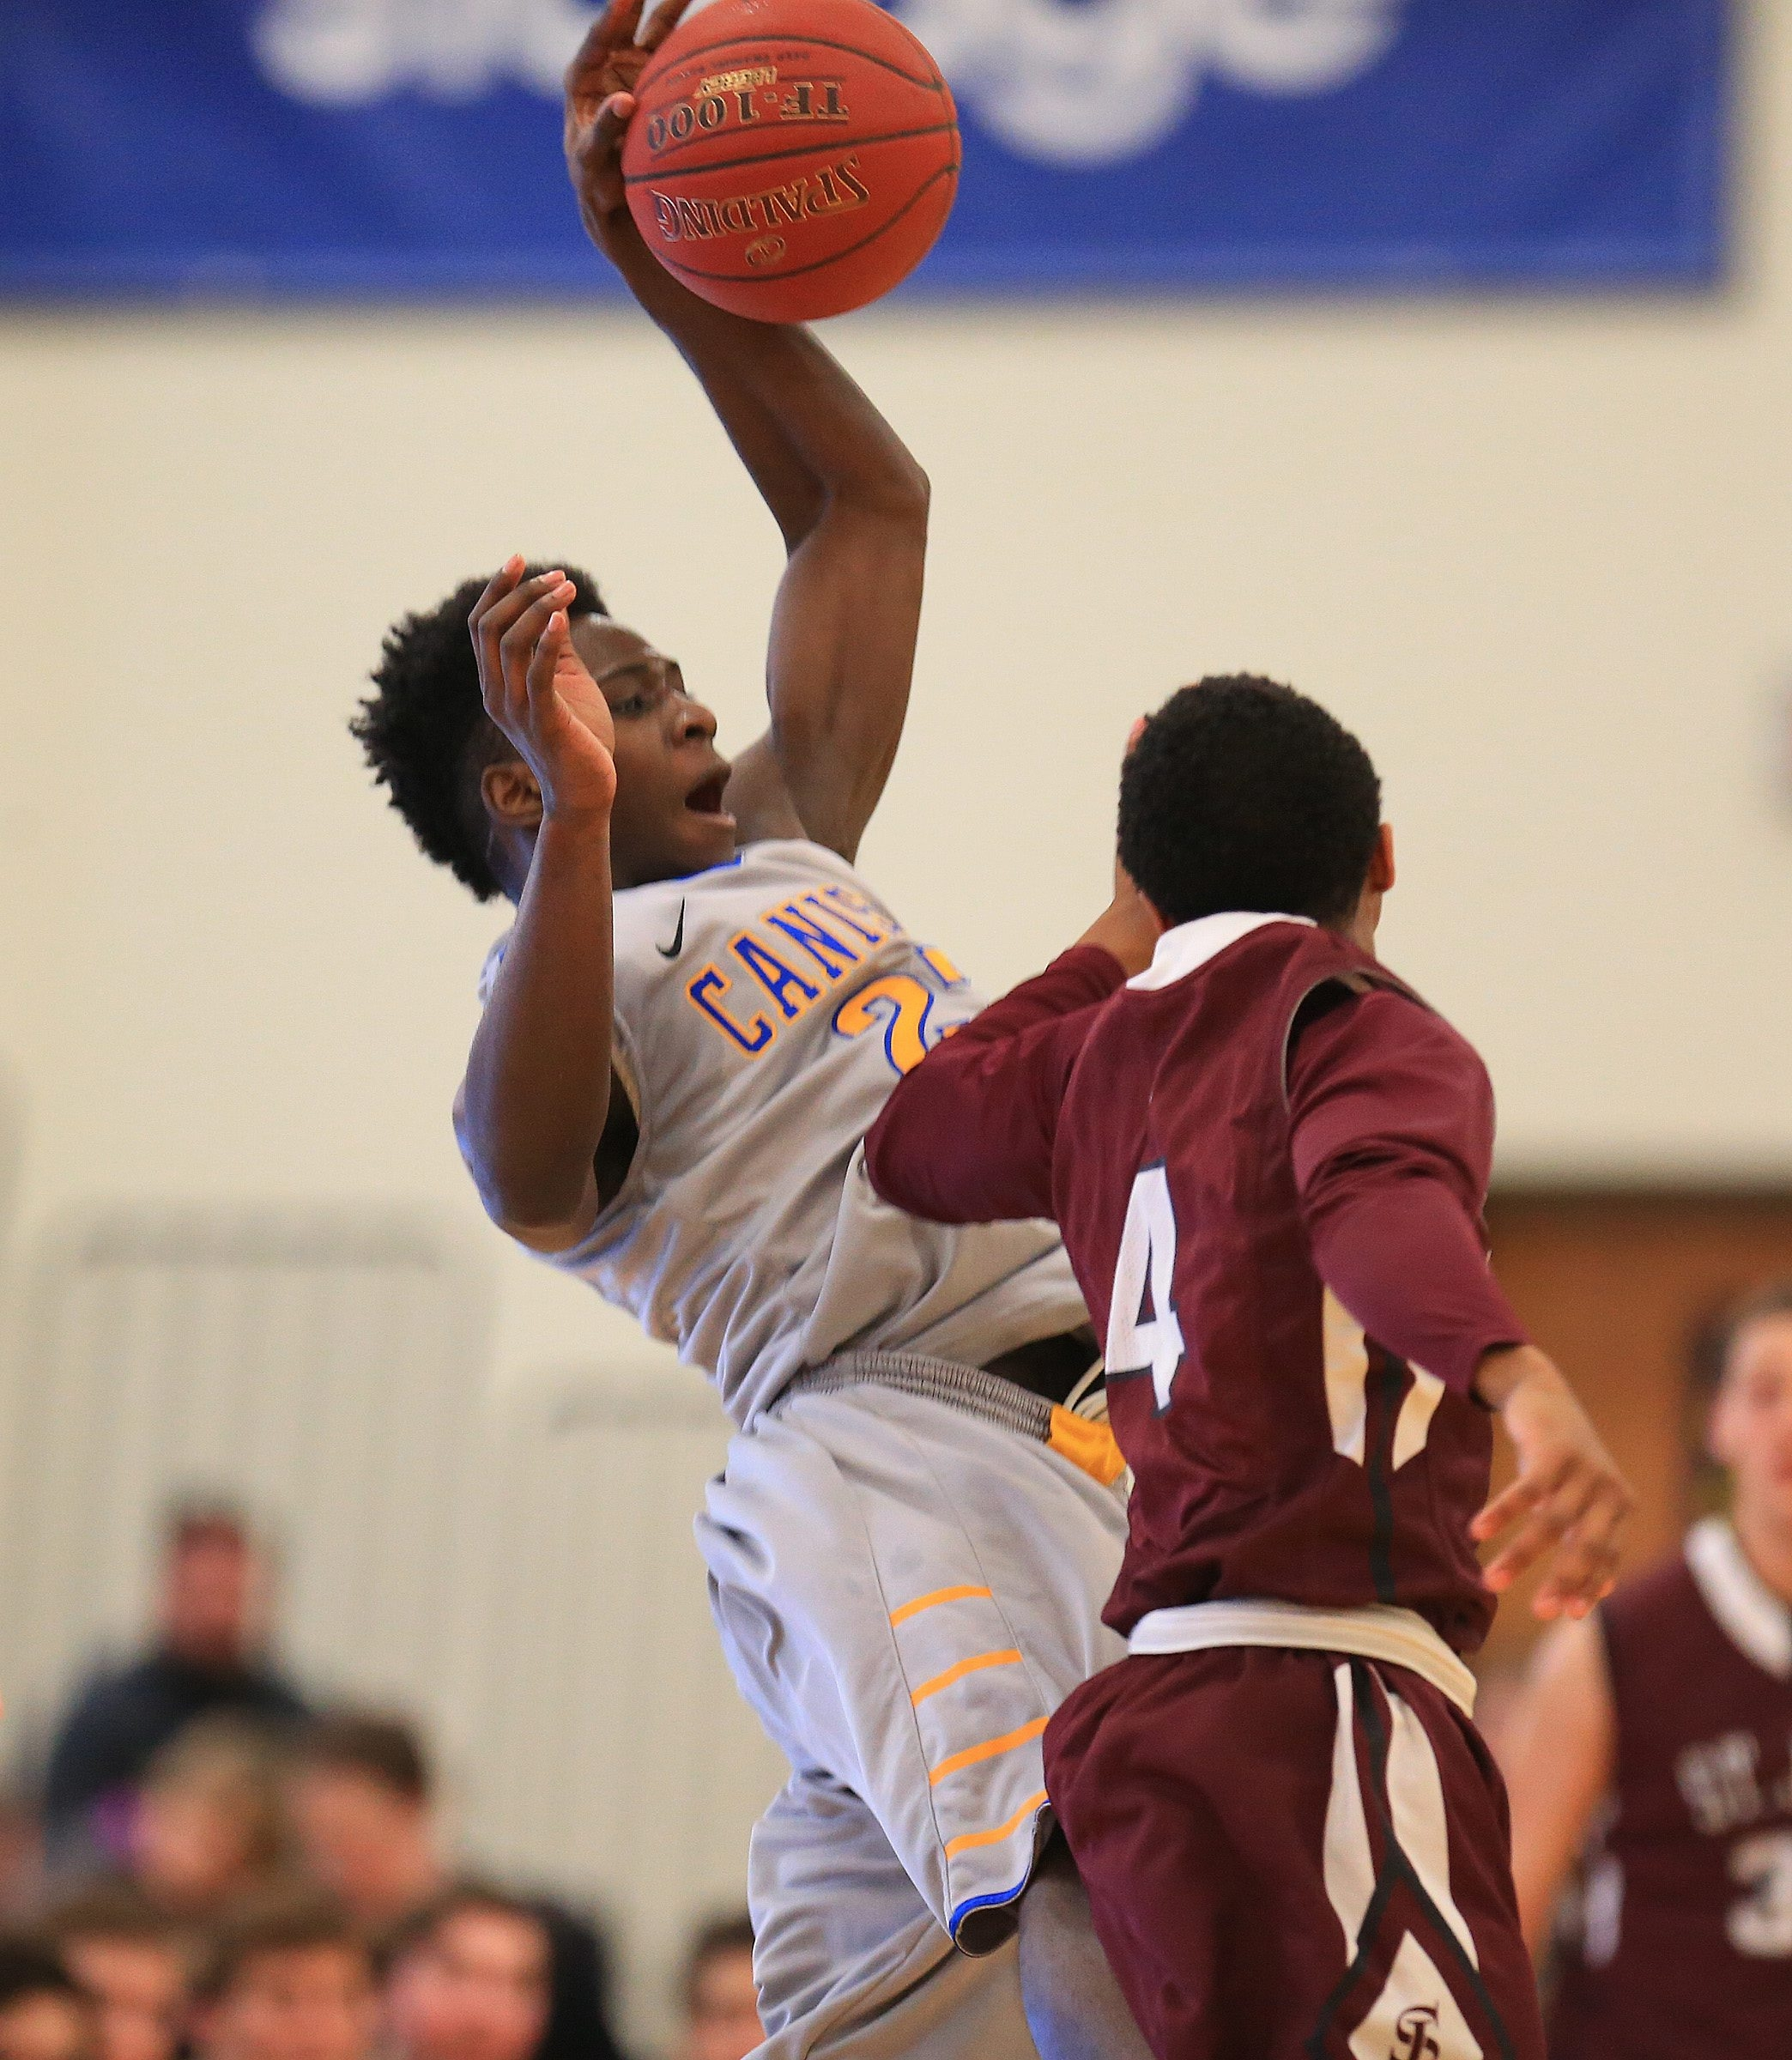 LaTerrance Reed of Canisius tries to control the ball against Naseer Jackson of St. Joe's. Reed had 24 points in the Crusaders' 71-60 win.